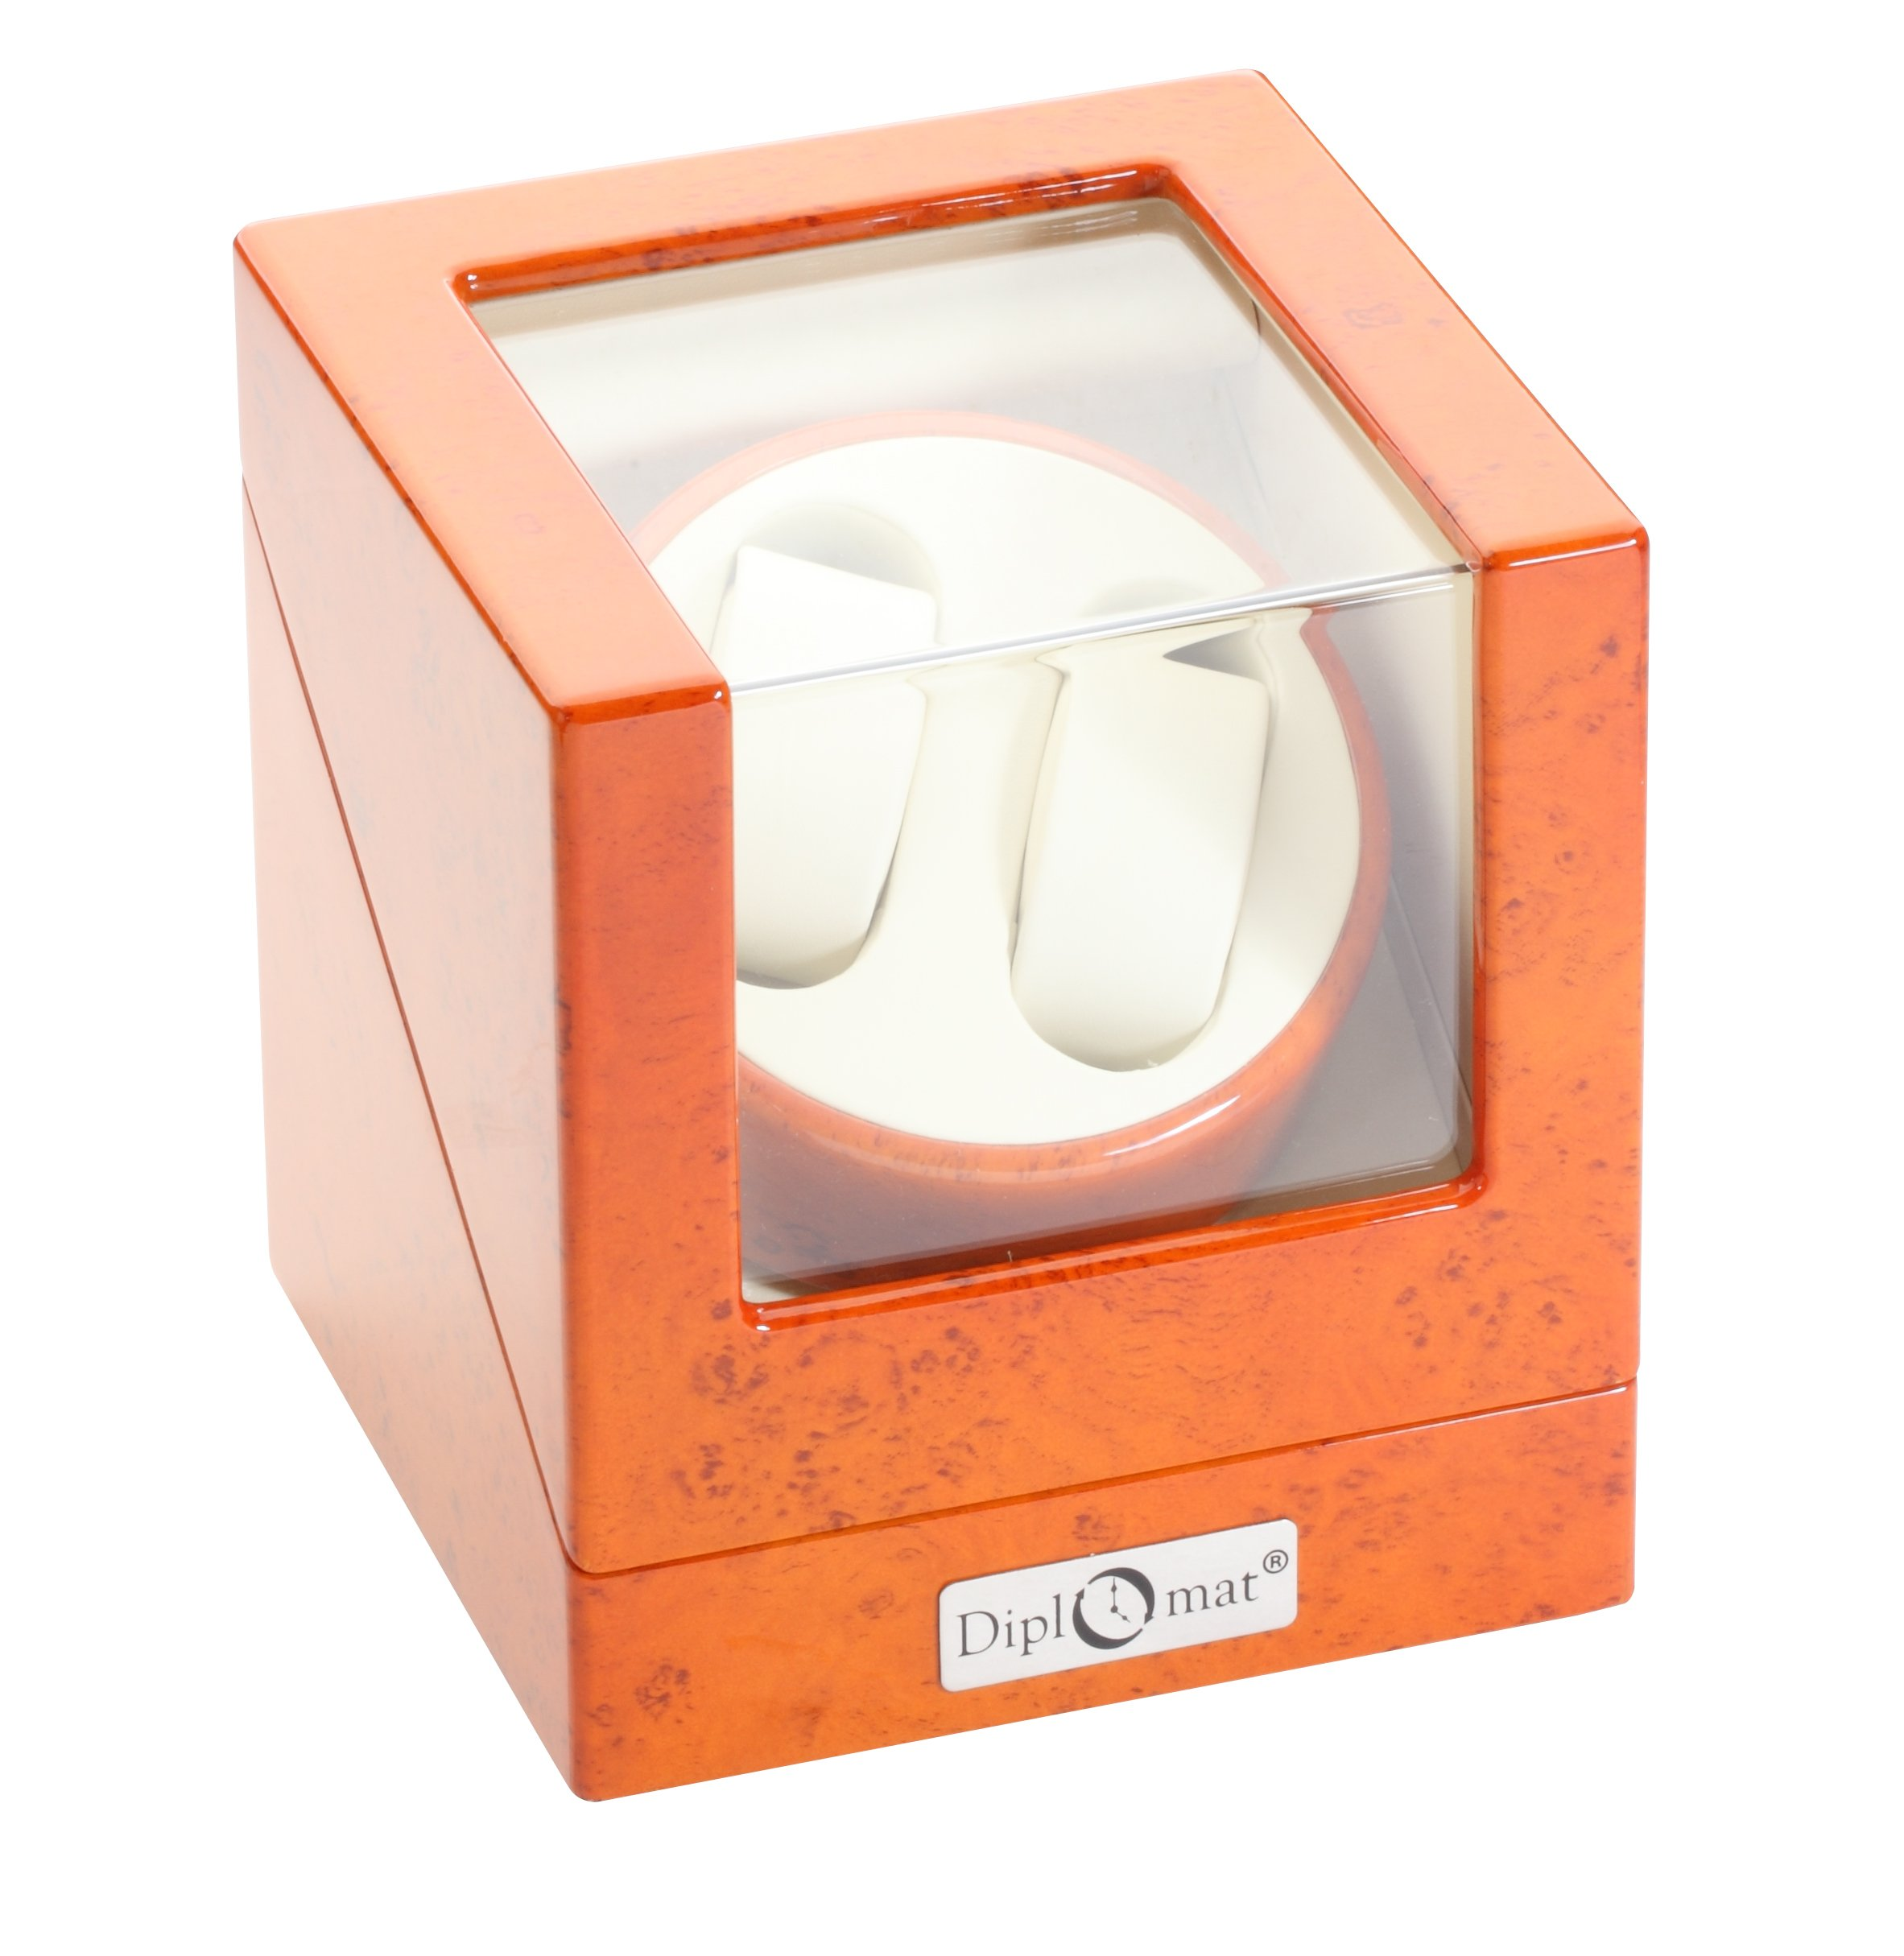 Diplomat Burl Wood Double Watch Winder with Off-White Leather Interior